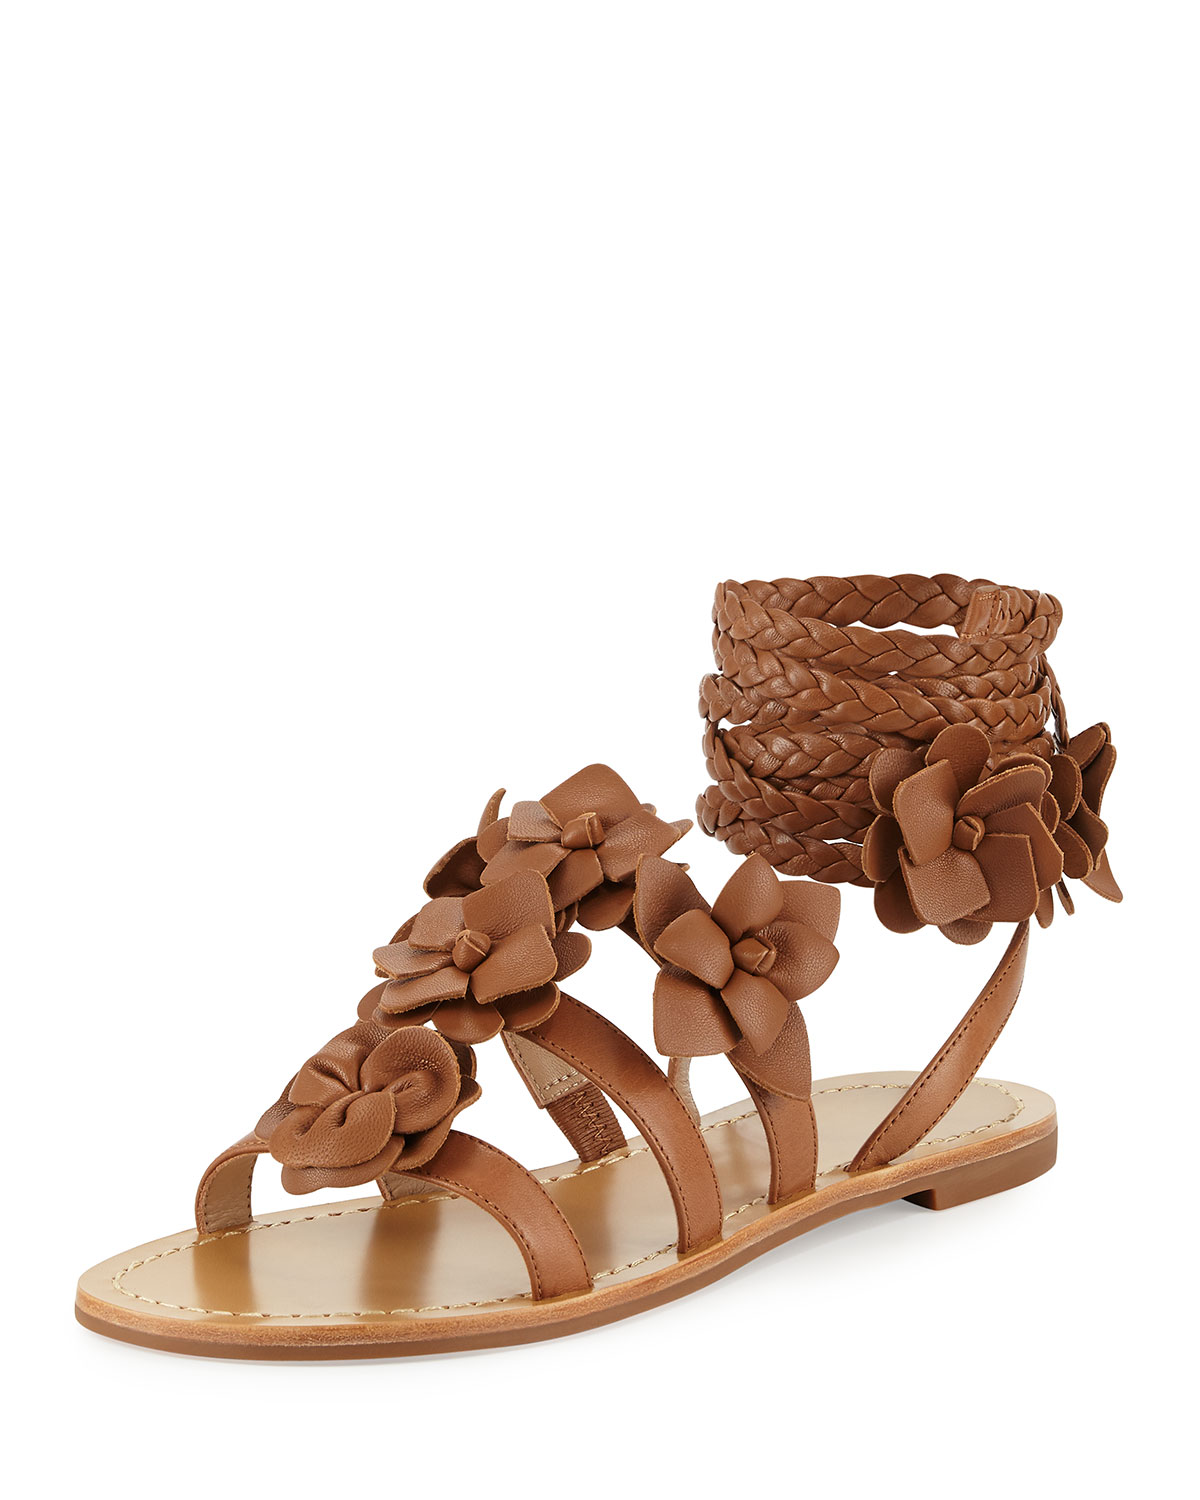 50637988c2ee1 Tory Burch Blossom Leather Gladiator Sandal